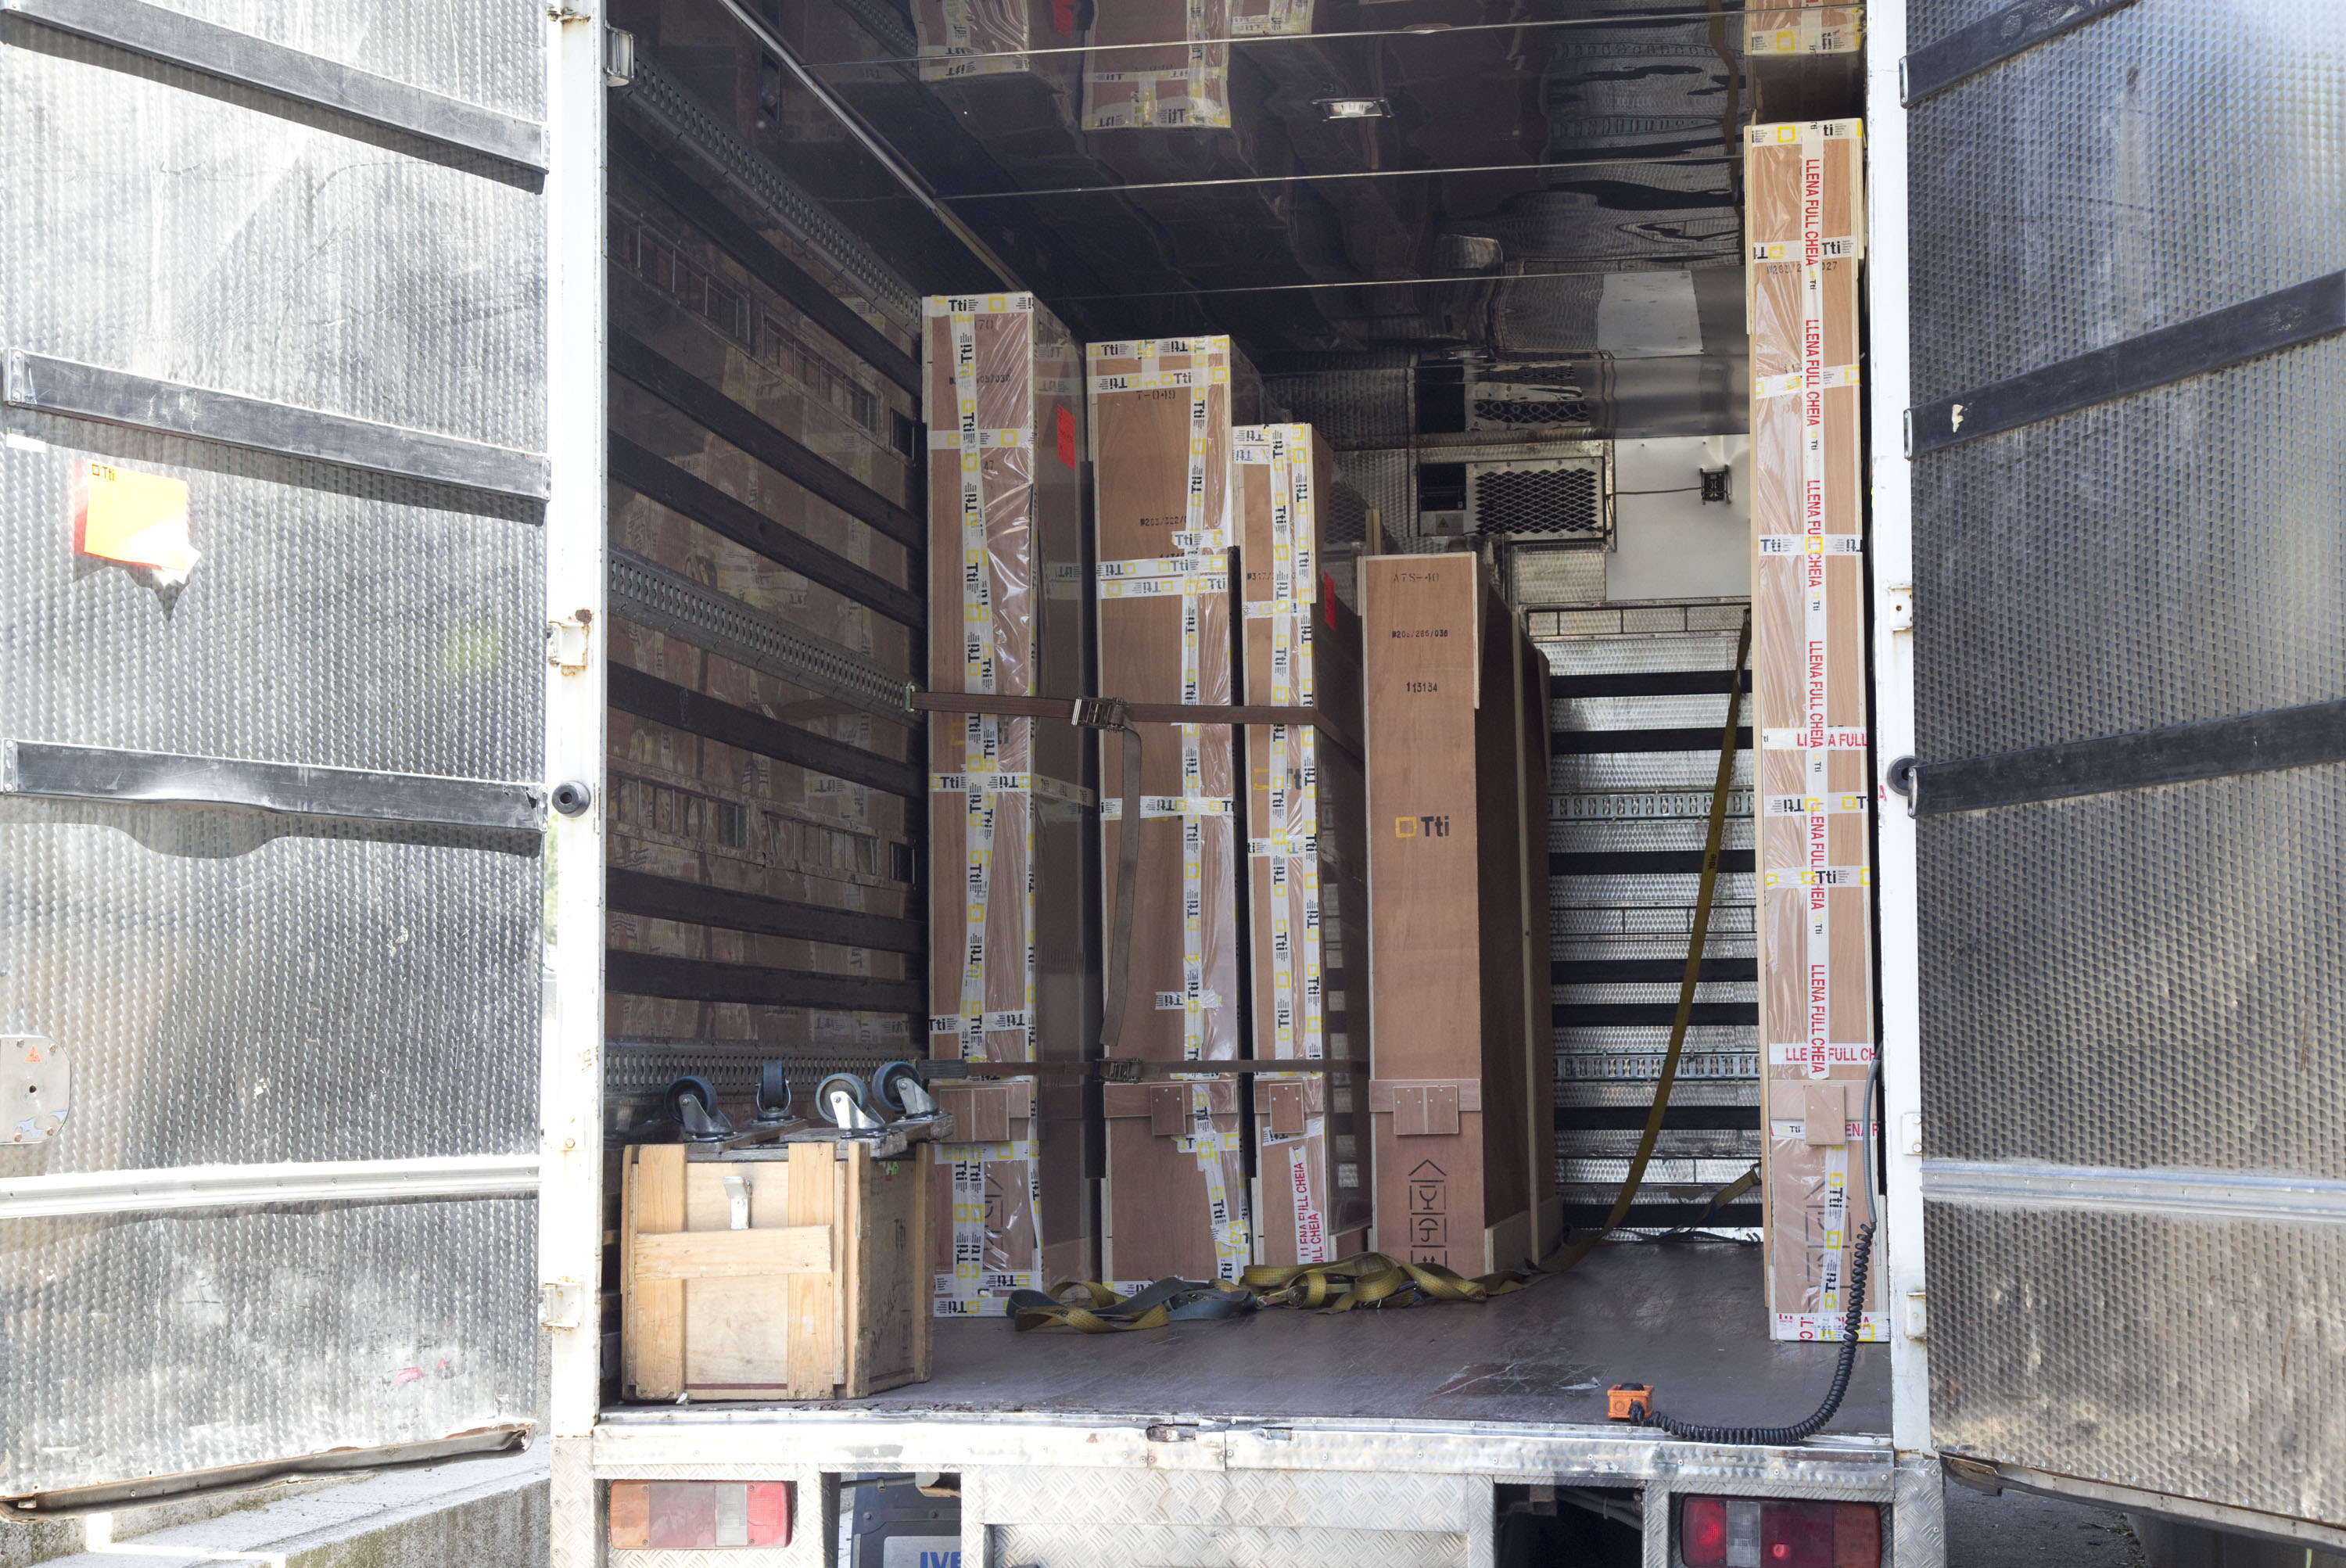 Anchorage of packaging in the truck to avoid vibrations